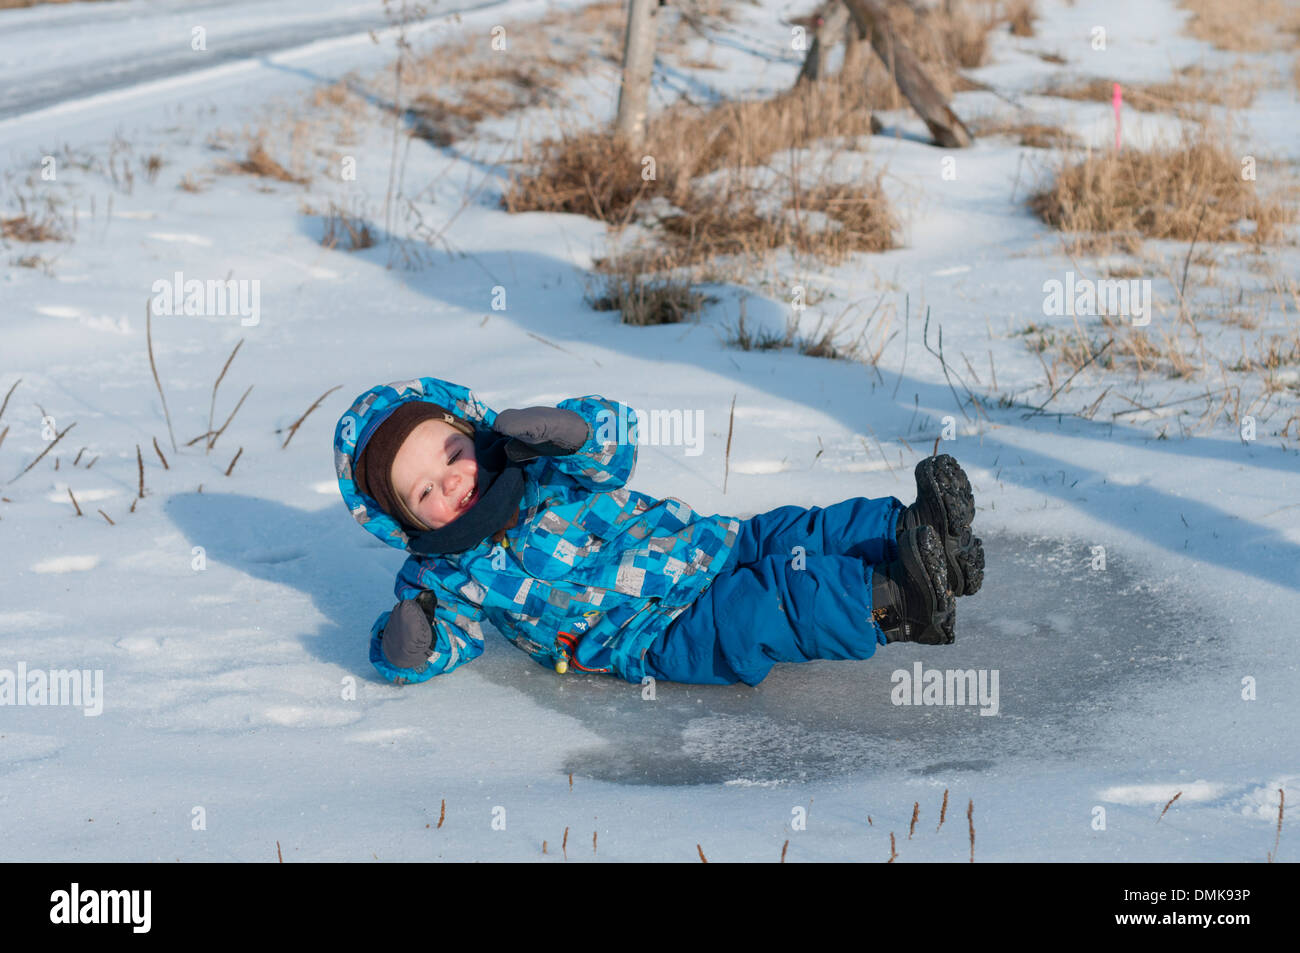 A baby boy slips on an icy puddle - Stock Image